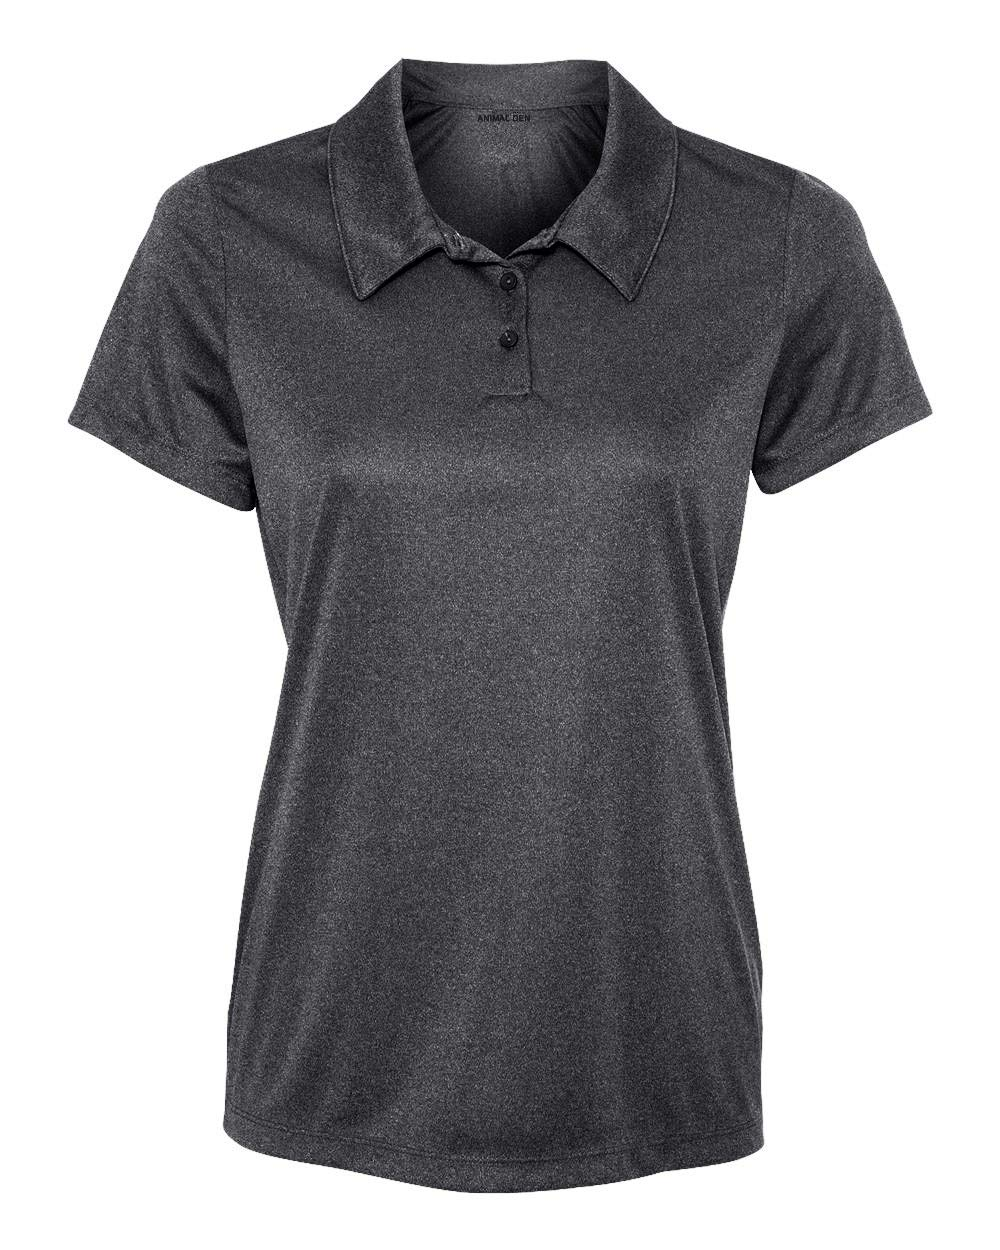 Animal Den Women's Dry-Fit Golf Polo Shirts 3-Button Golf Polo's in 20 Colors XS-3XL Shirt DKGRHT-XS